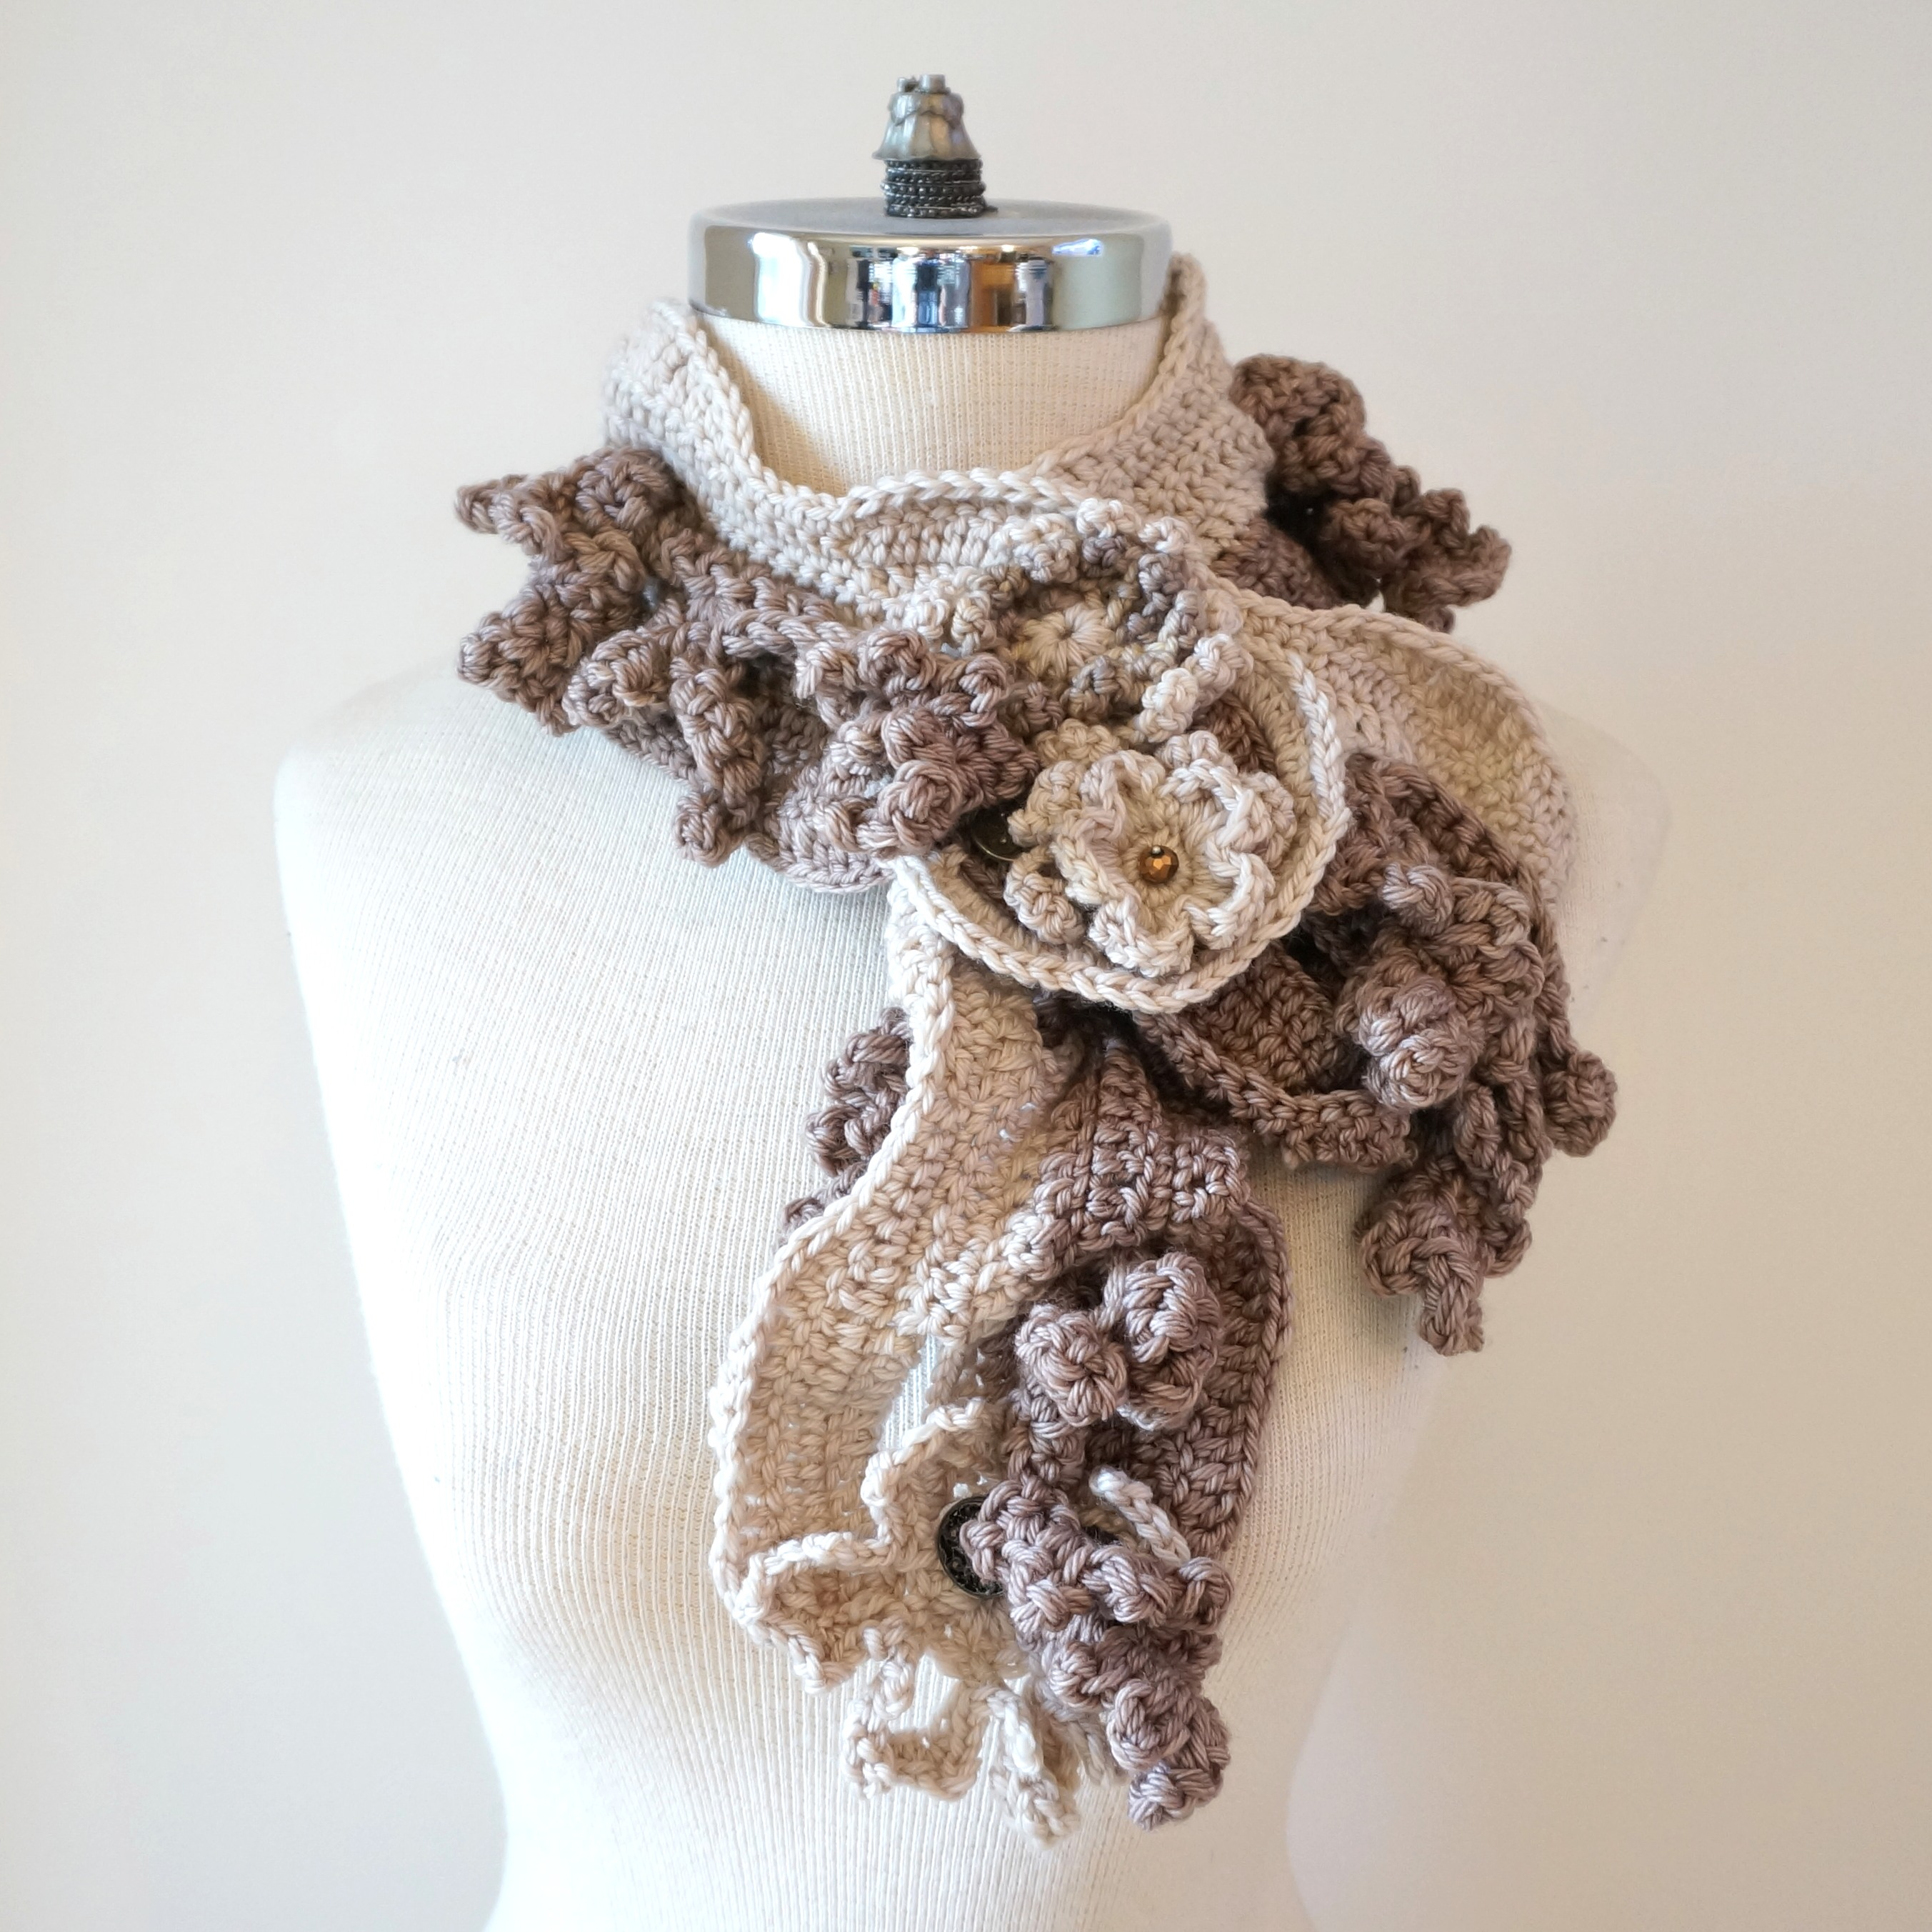 floral-scarf-architectural-design-ivory-beige-3